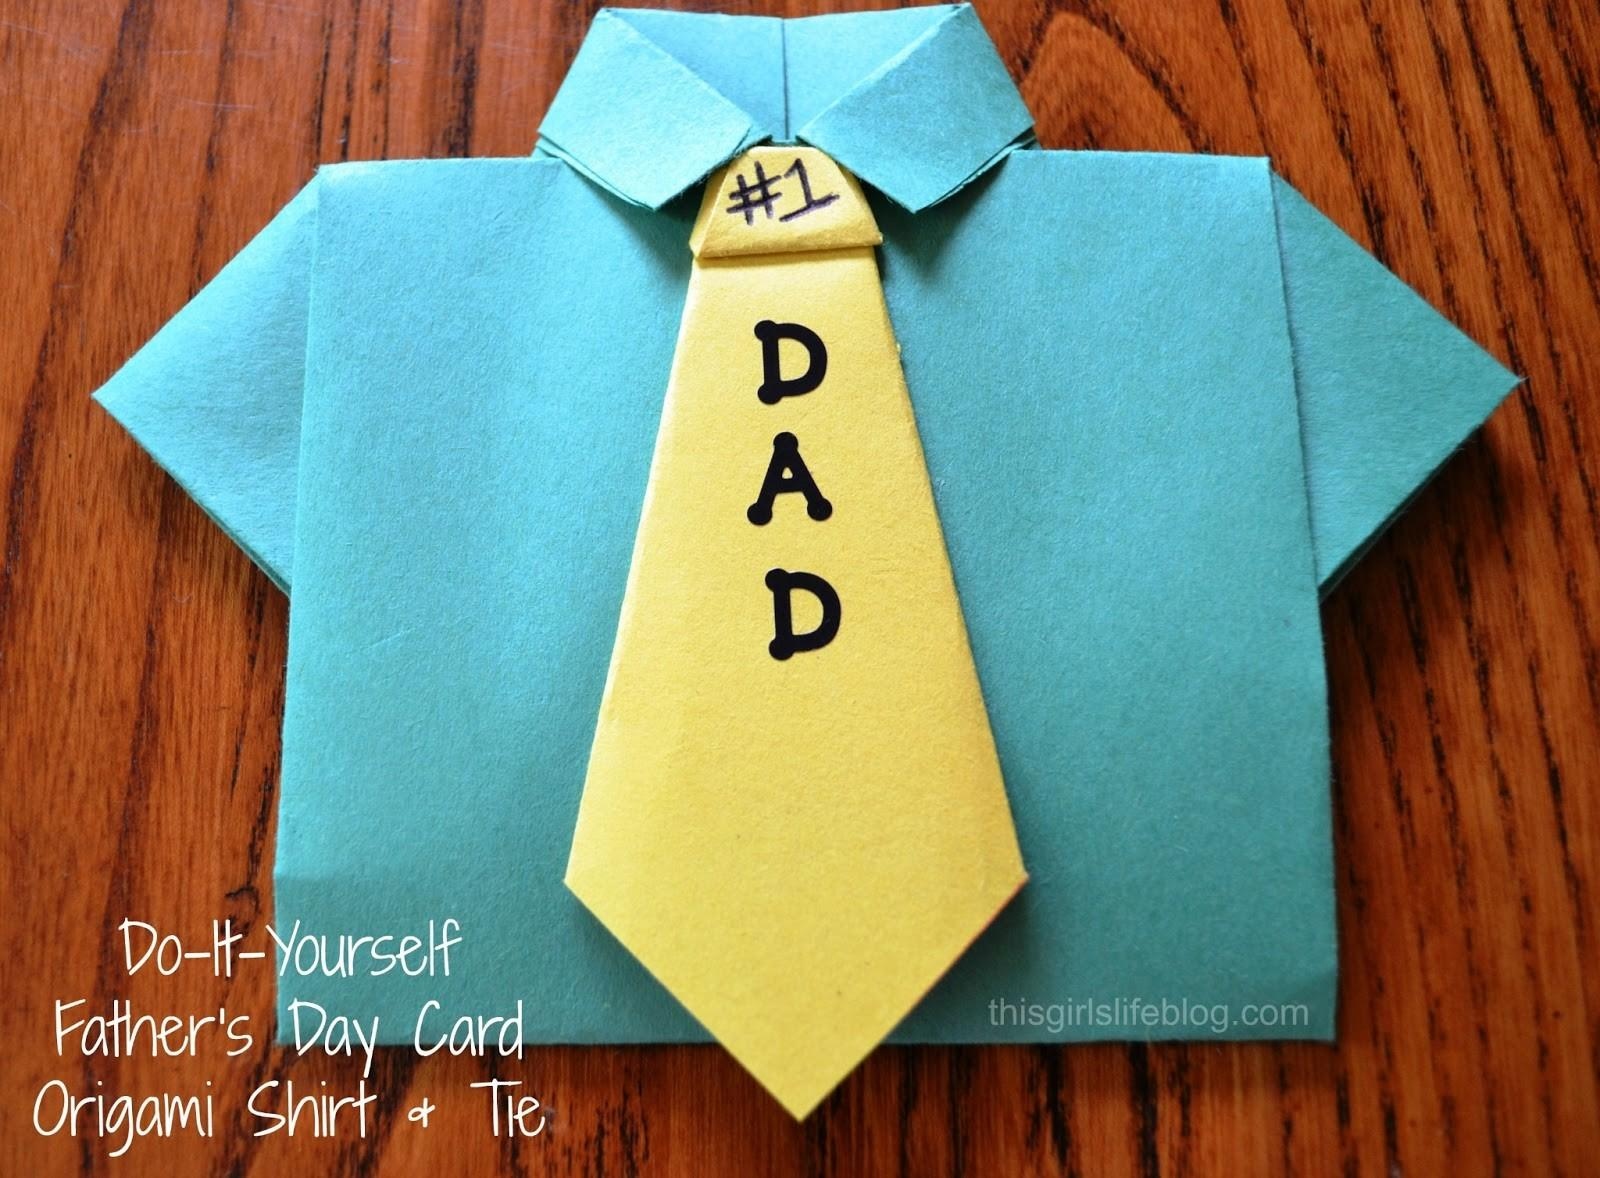 Juripunek Diy Father Day Card Origami Shirt Tie